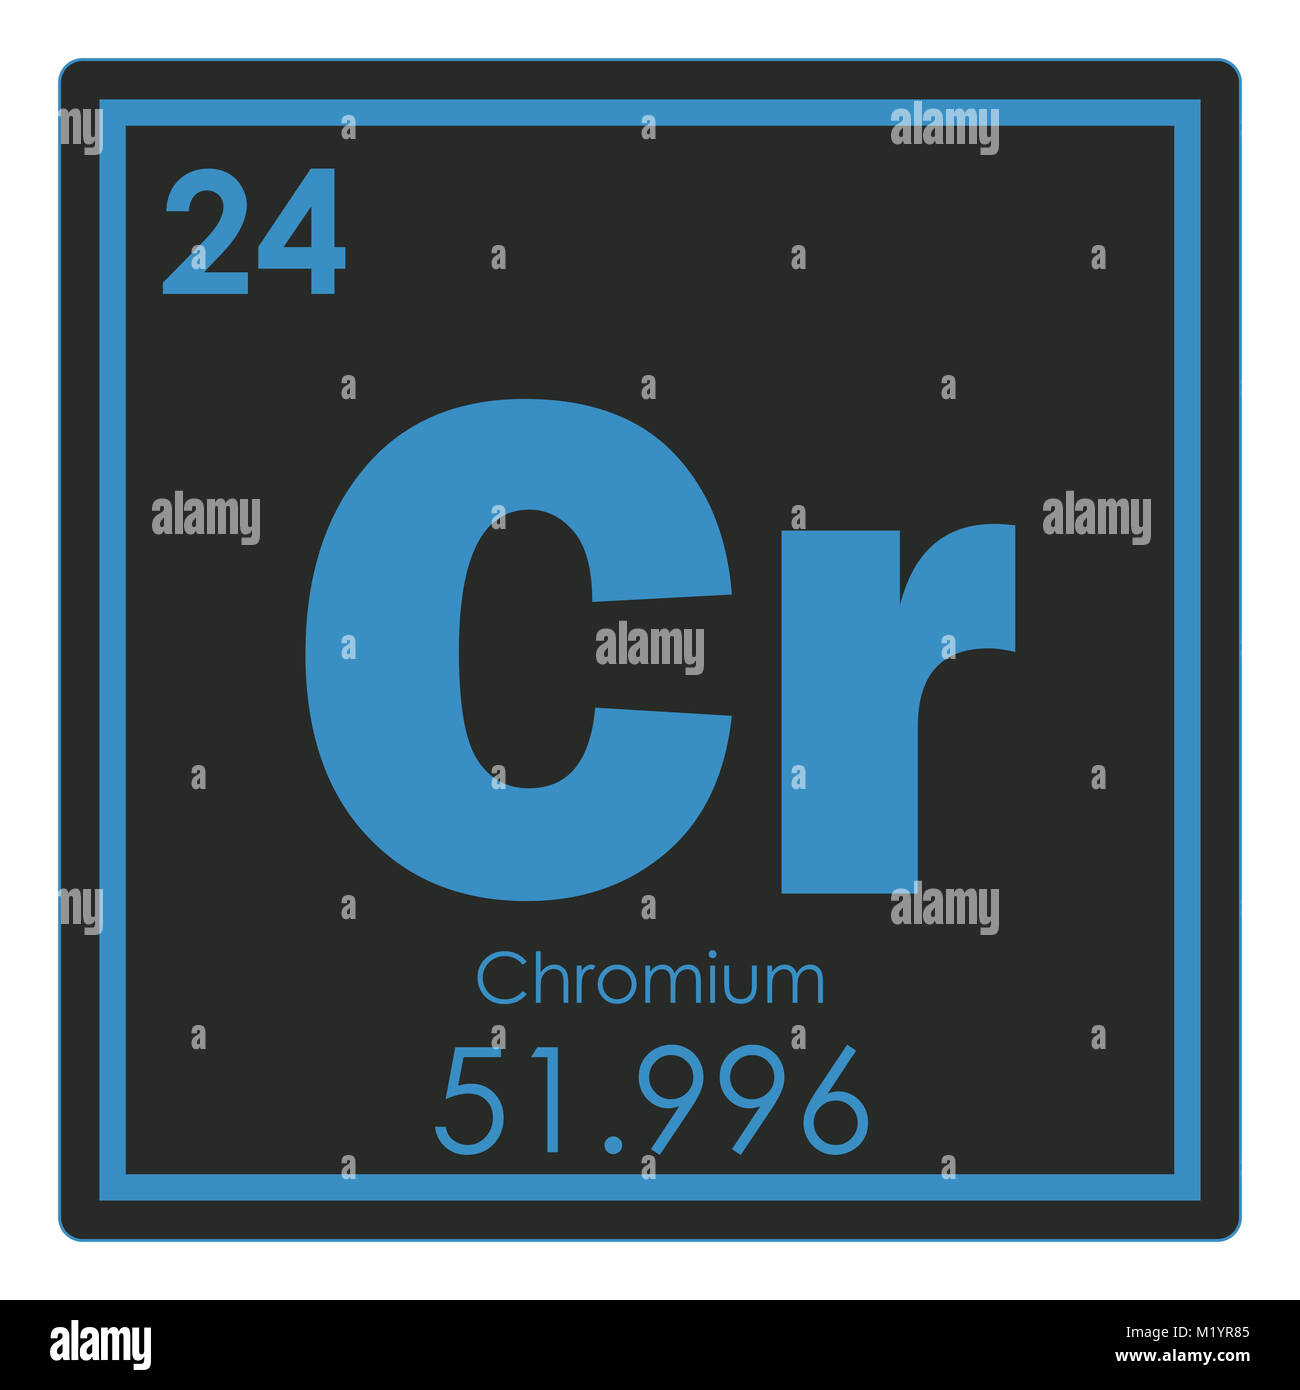 Chromium chemical stock photos chromium chemical stock images alamy chromium chemical element periodic table science symbol stock image urtaz Gallery